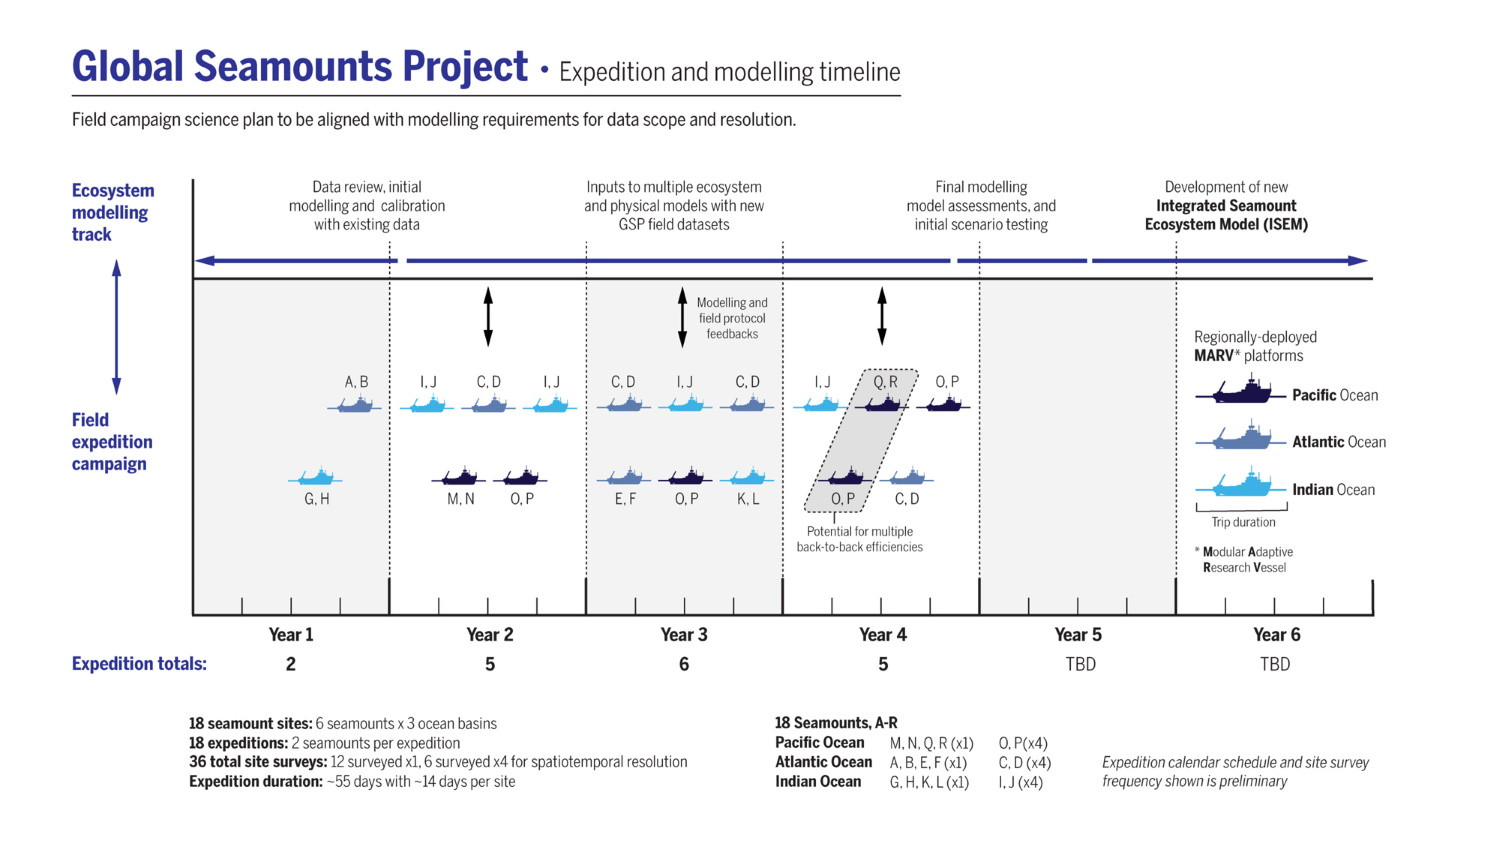 Figure 3: GSP Field Campaign and Ecosystem Modeling alignment and timeline.